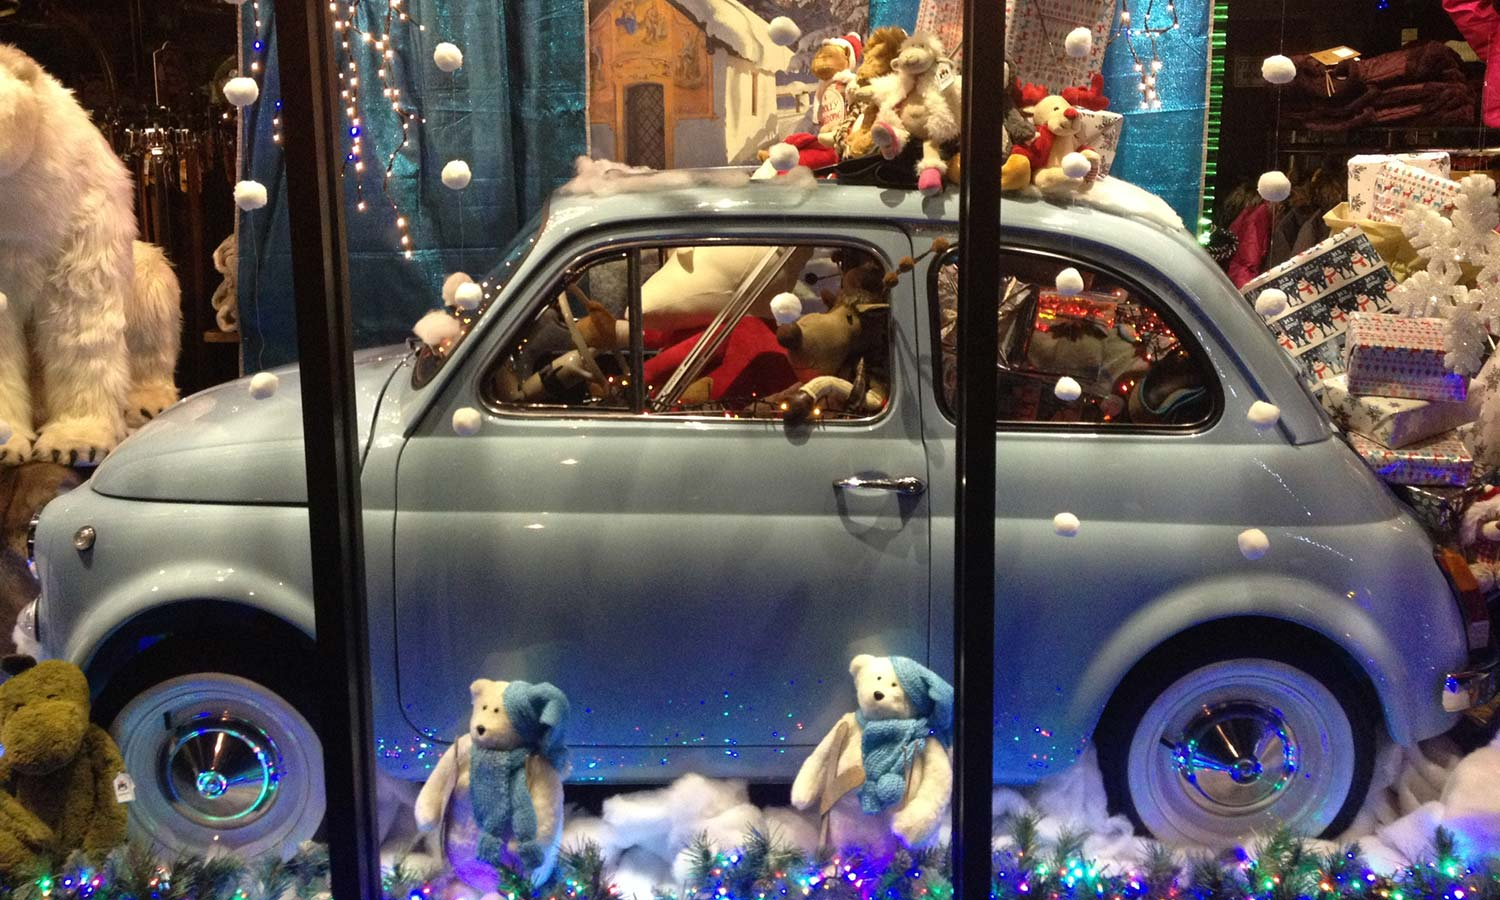 In Christmas 2017 Anna Davies Christmas window featured a powder blue Fiat 500